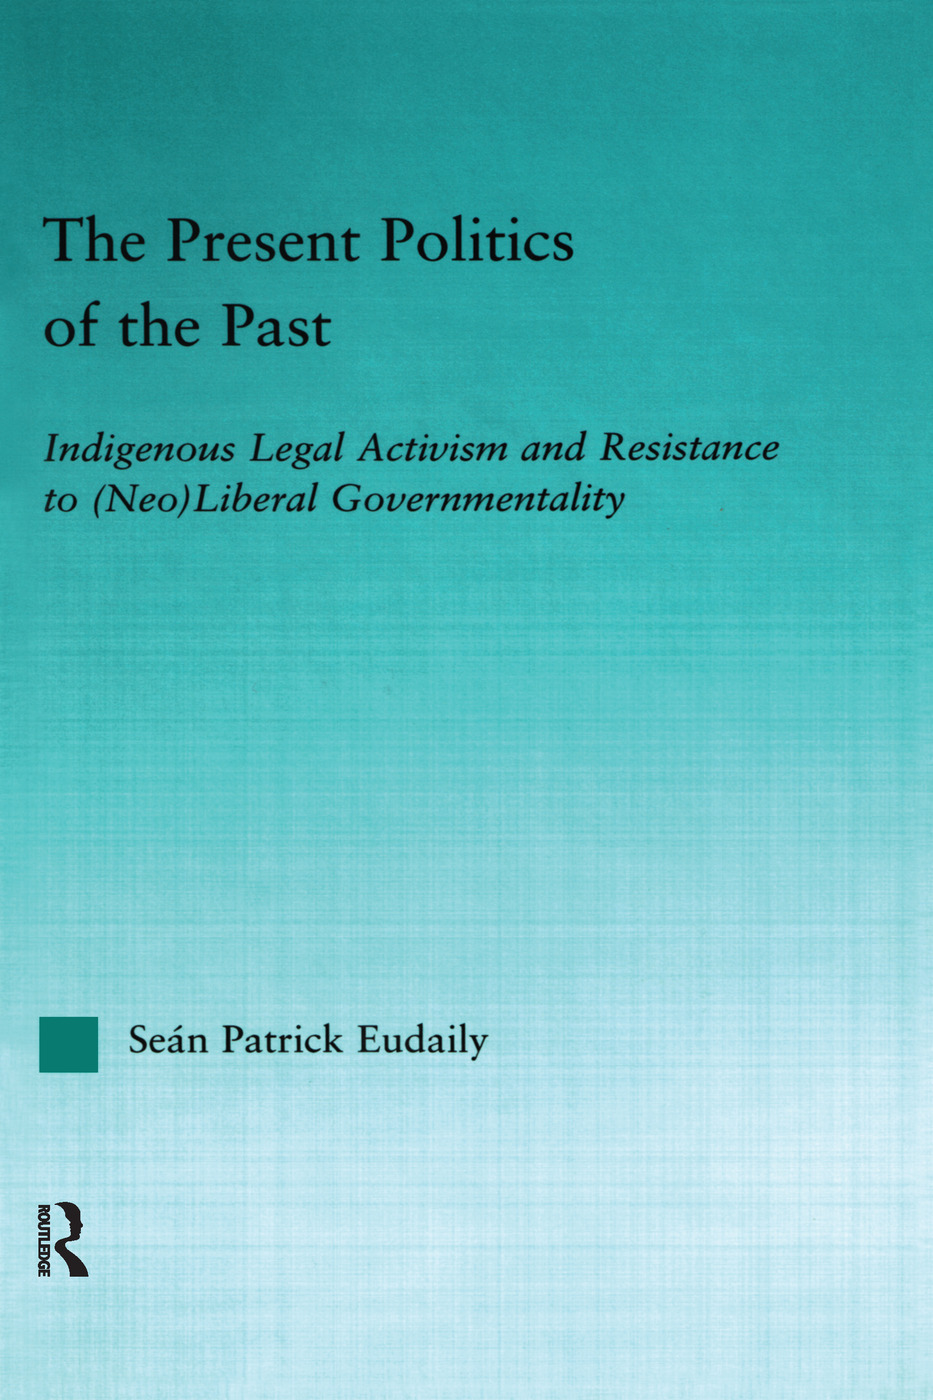 The Present Politics of the Past: Indigenous Legal Activism and Resistance to (Neo)Liberal Governmentality (Paperback) book cover